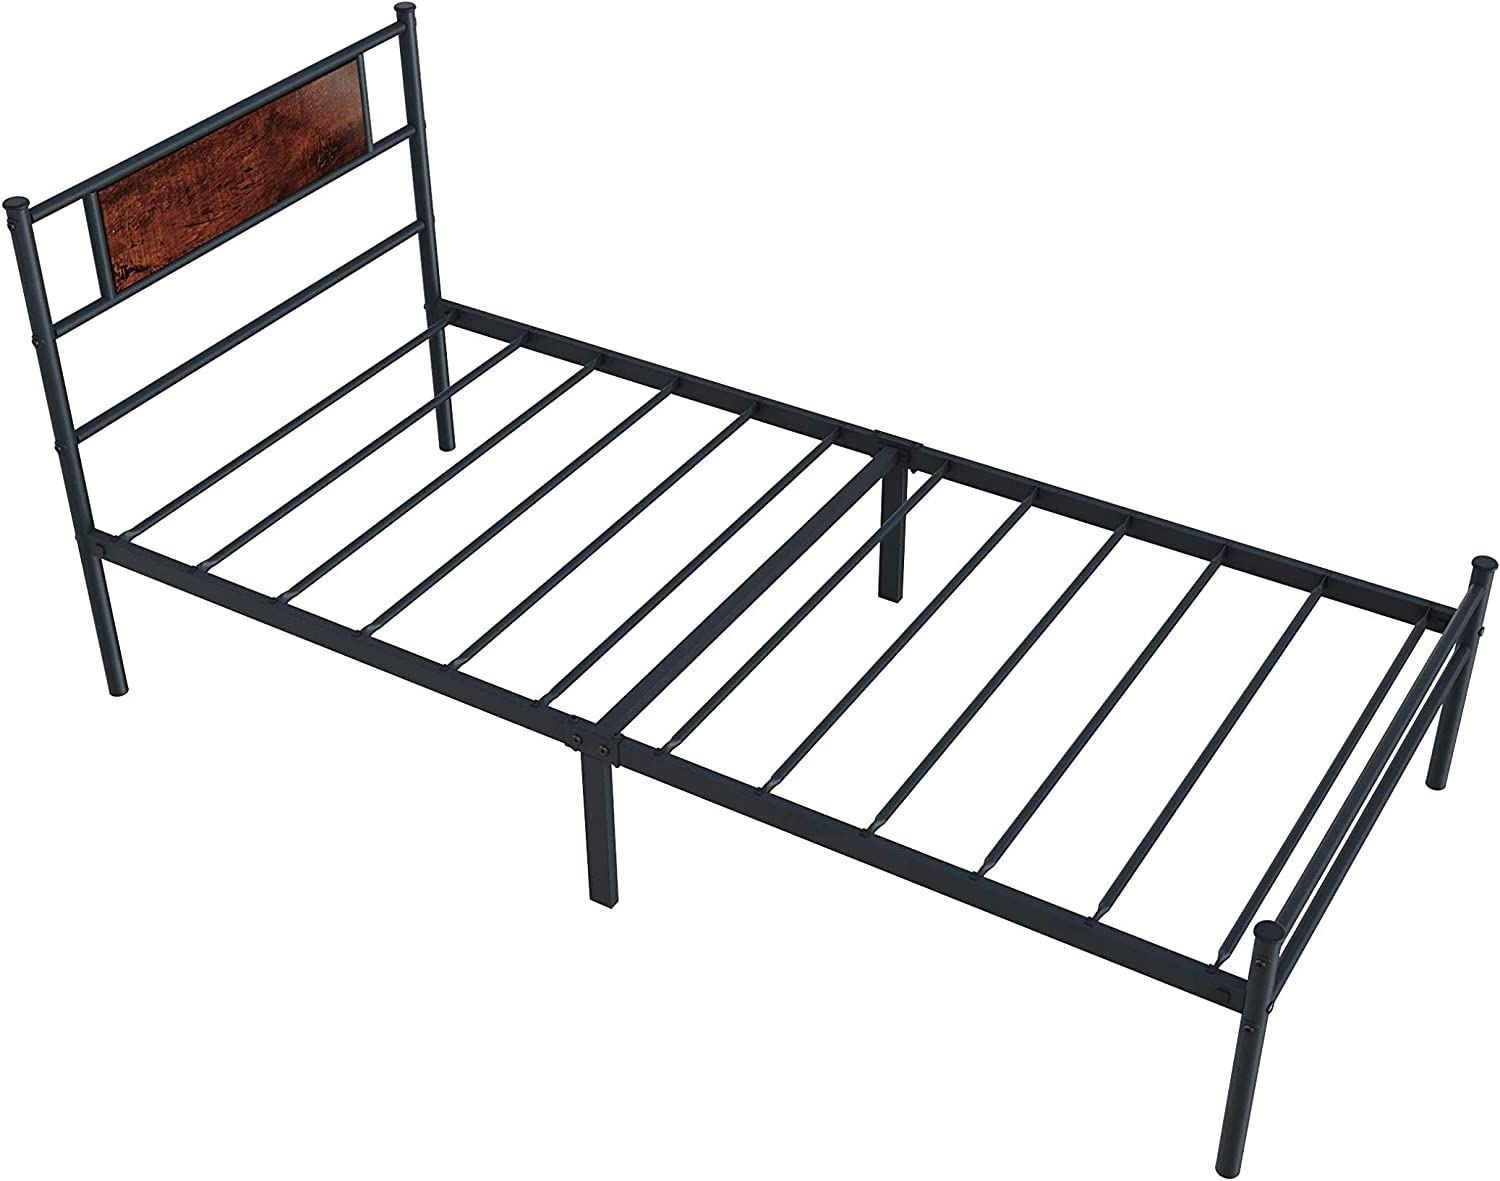 Nile Full Size Bed Frame with 13 Max 90% OFF inch Rustic Heavy Du Max 71% OFF Headboard